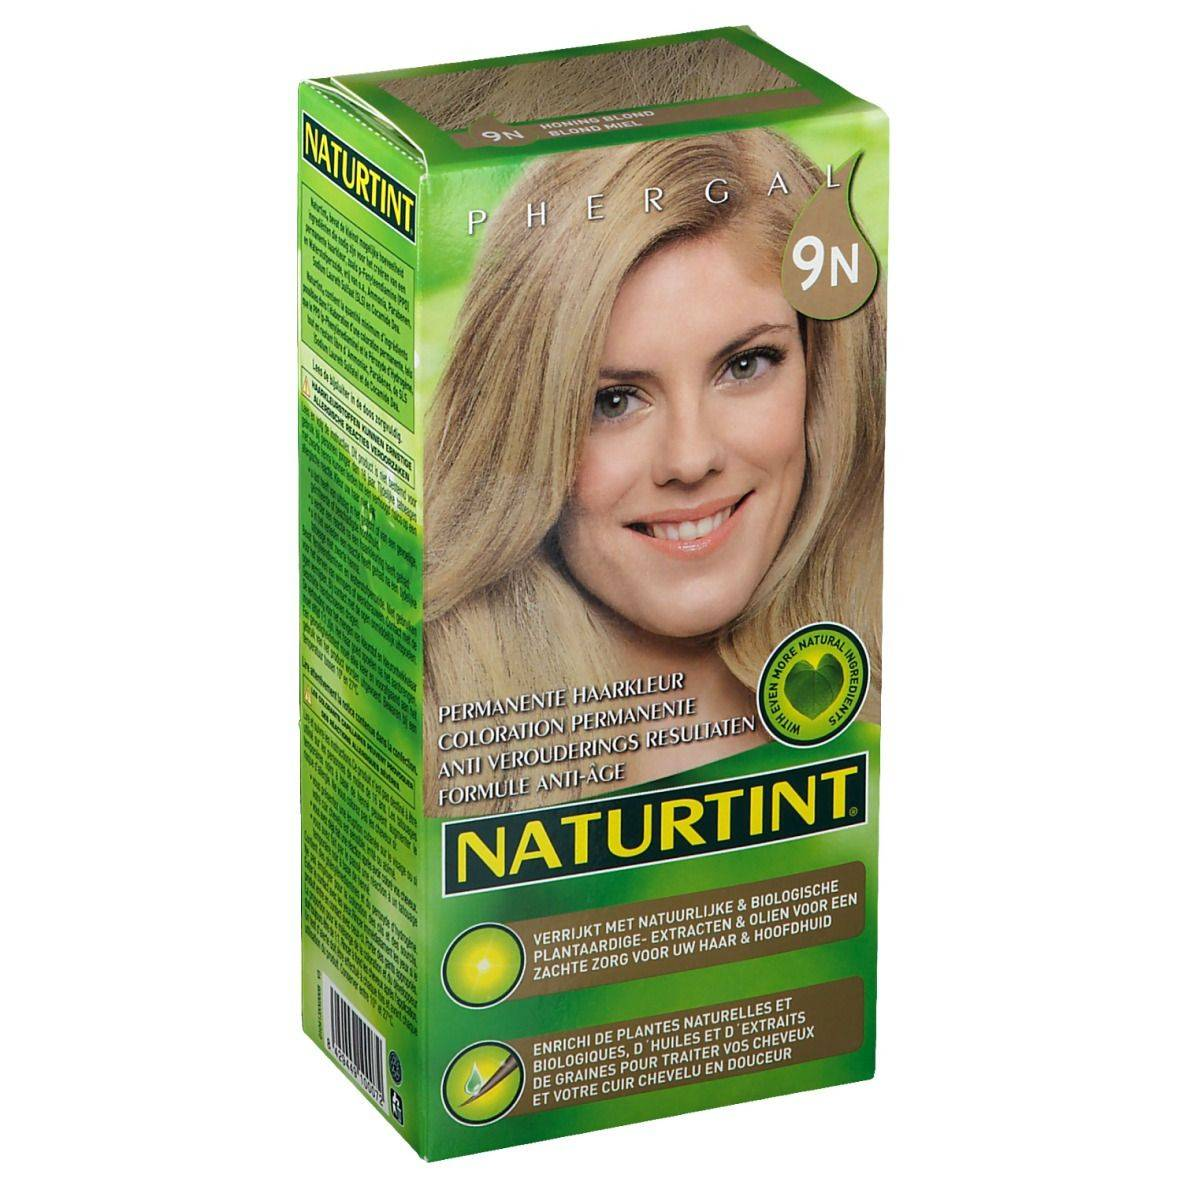 NATURTINT® Coloration Permanente 9N Blond miel ml emballage(s) combi